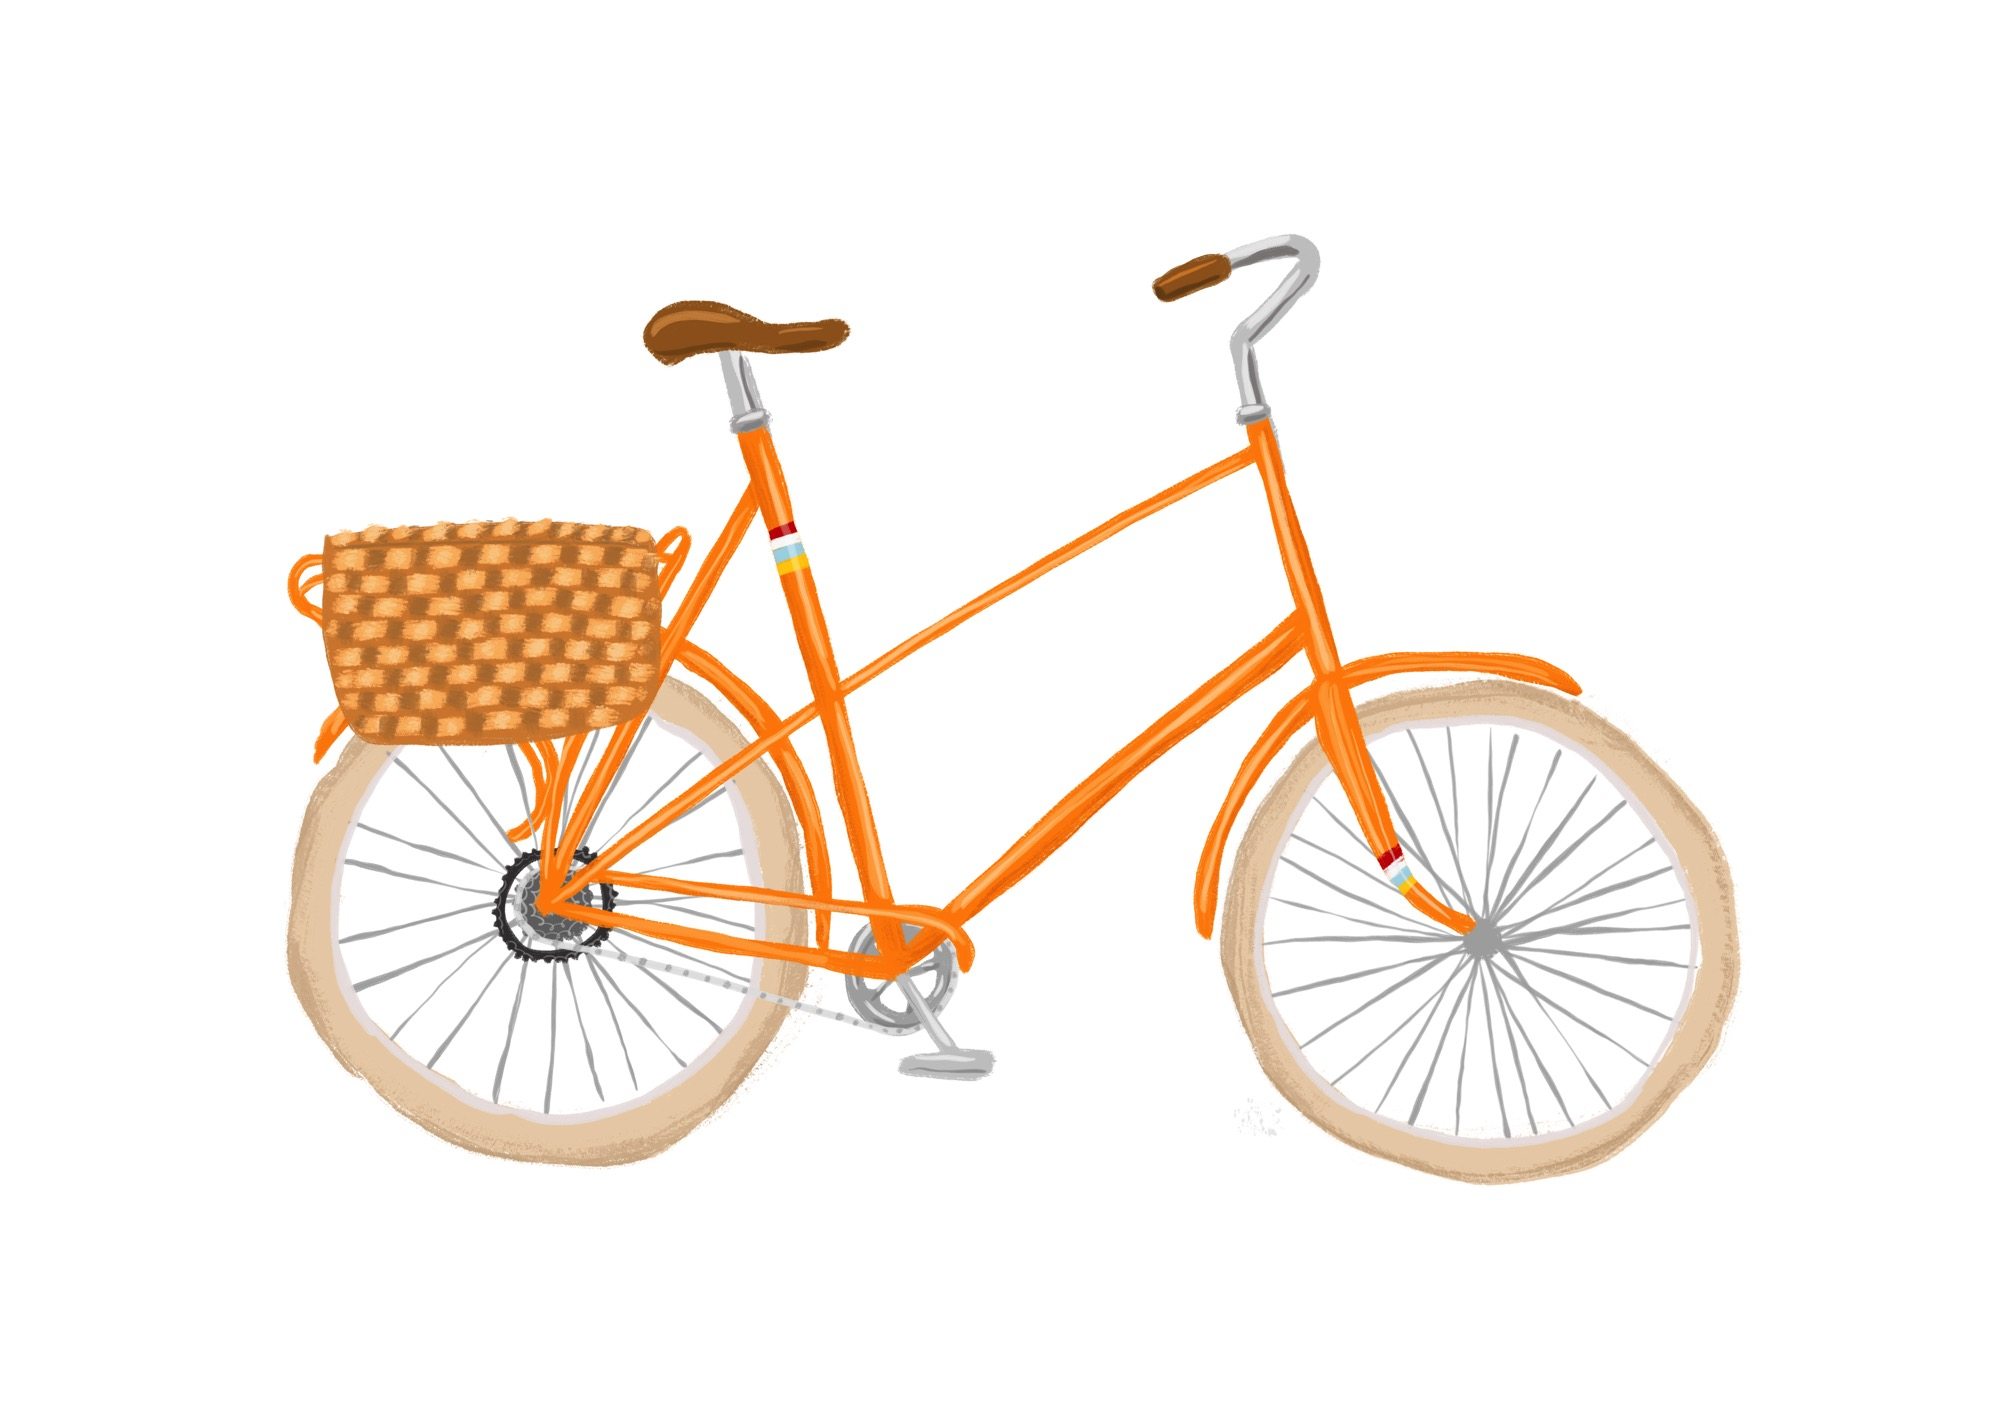 My Bike by Lisa Bardot